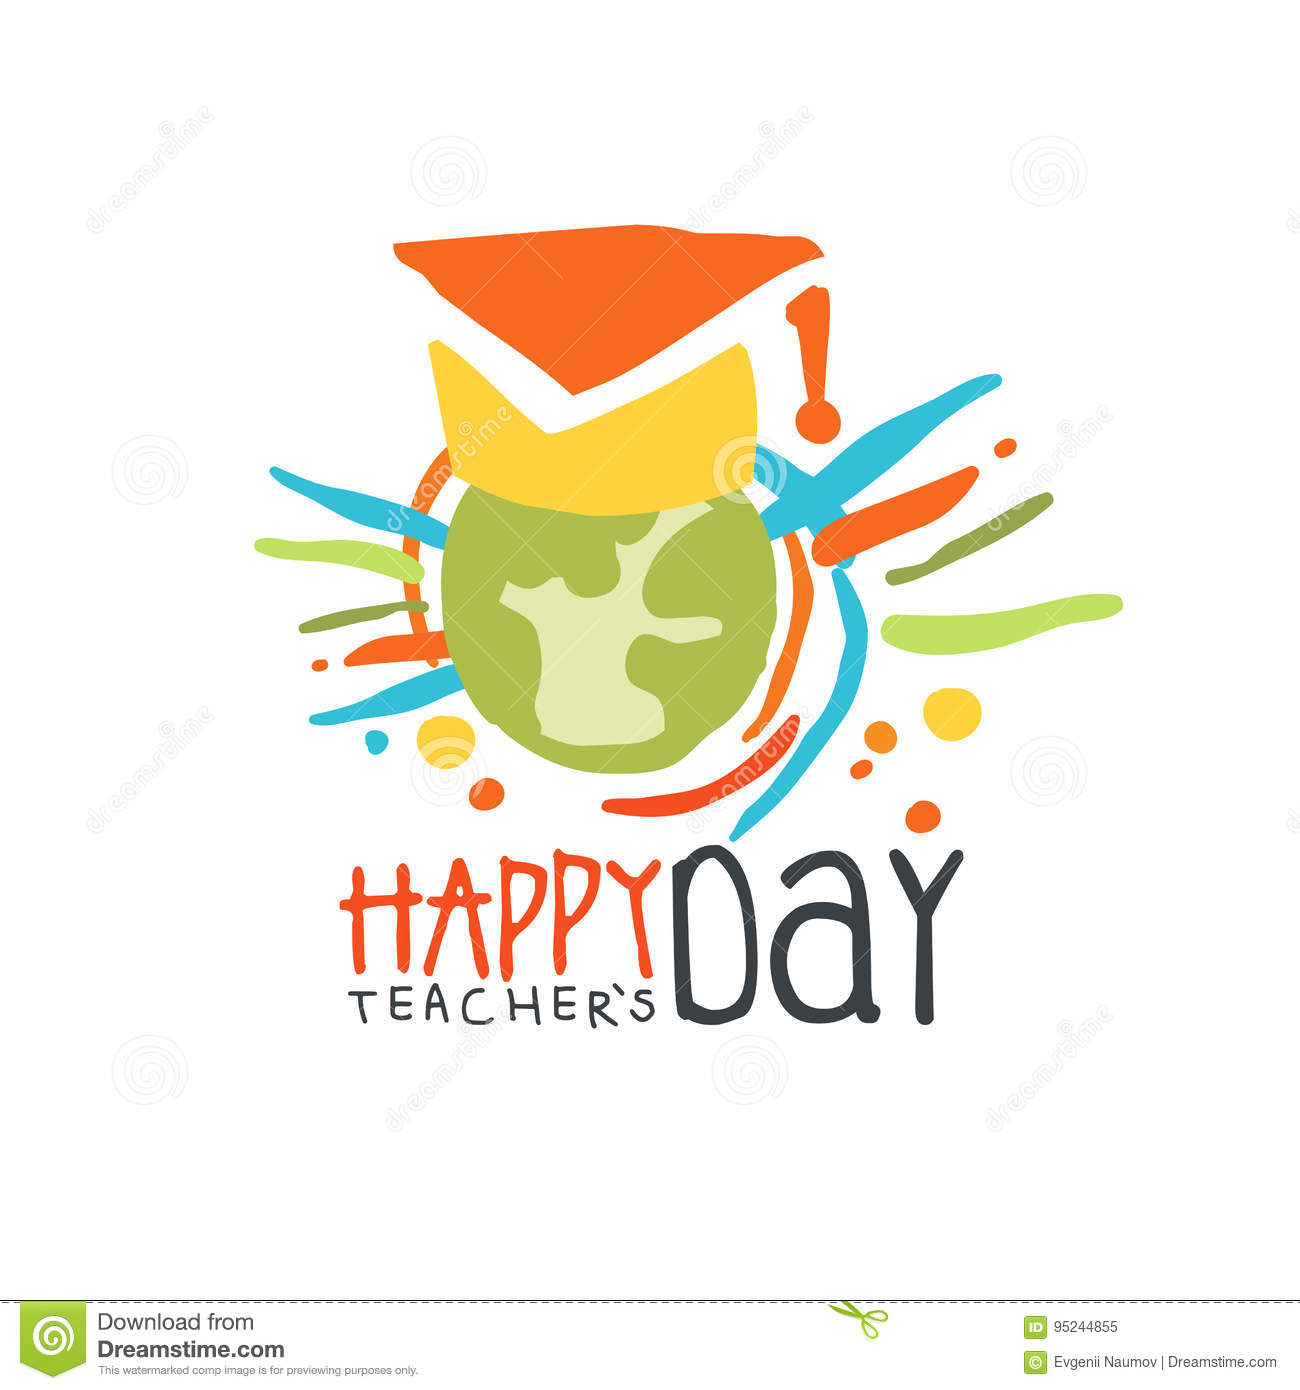 Happy Teachers Day label, back to school colorful hand drawn vector Illustration